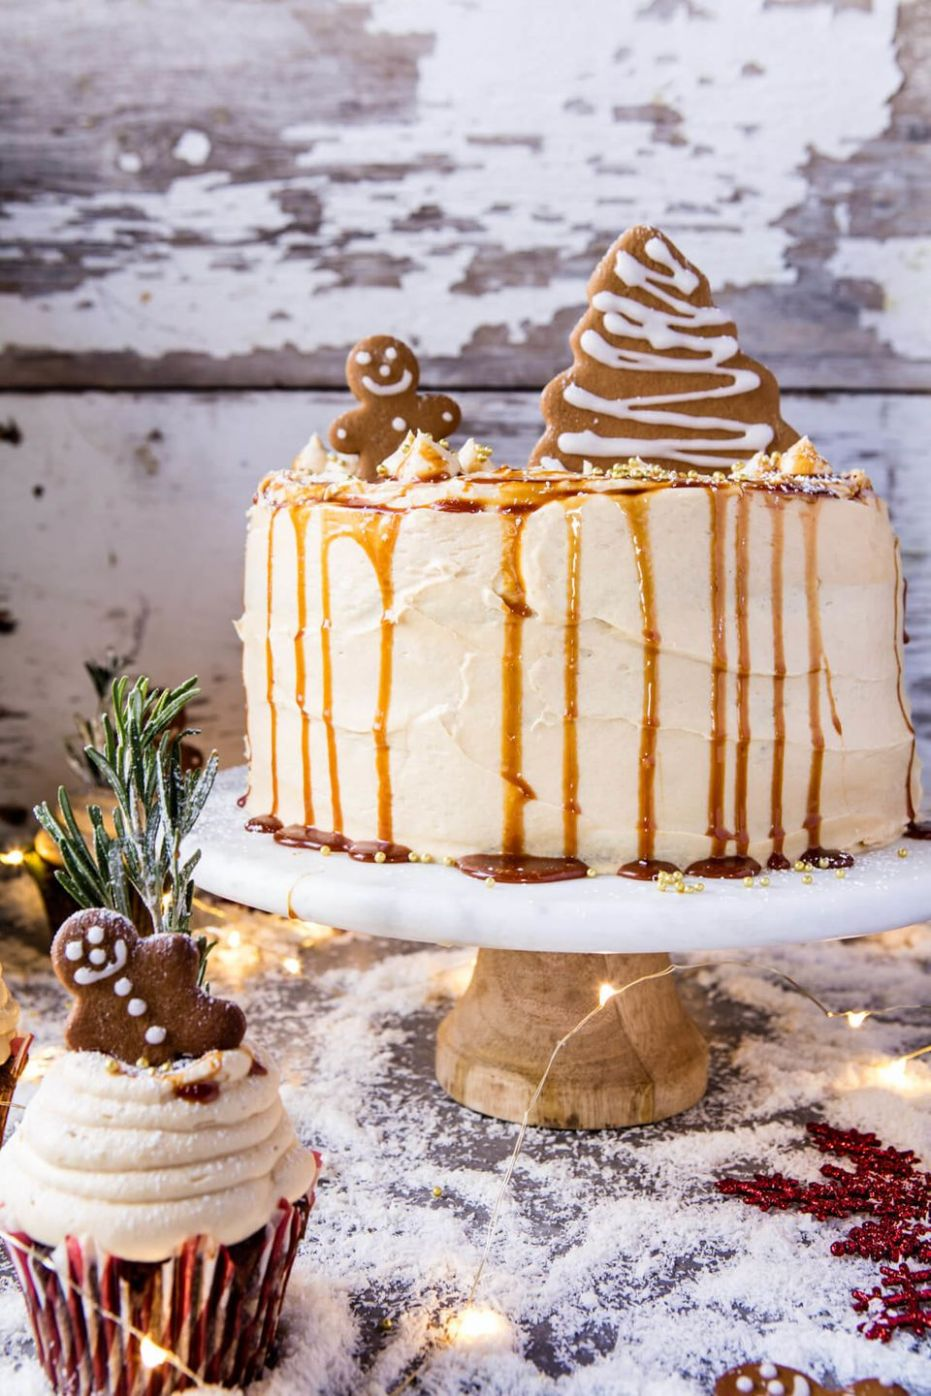 Holiday Dessert Recipes So Gorgeous You'll Make Them Twice ...